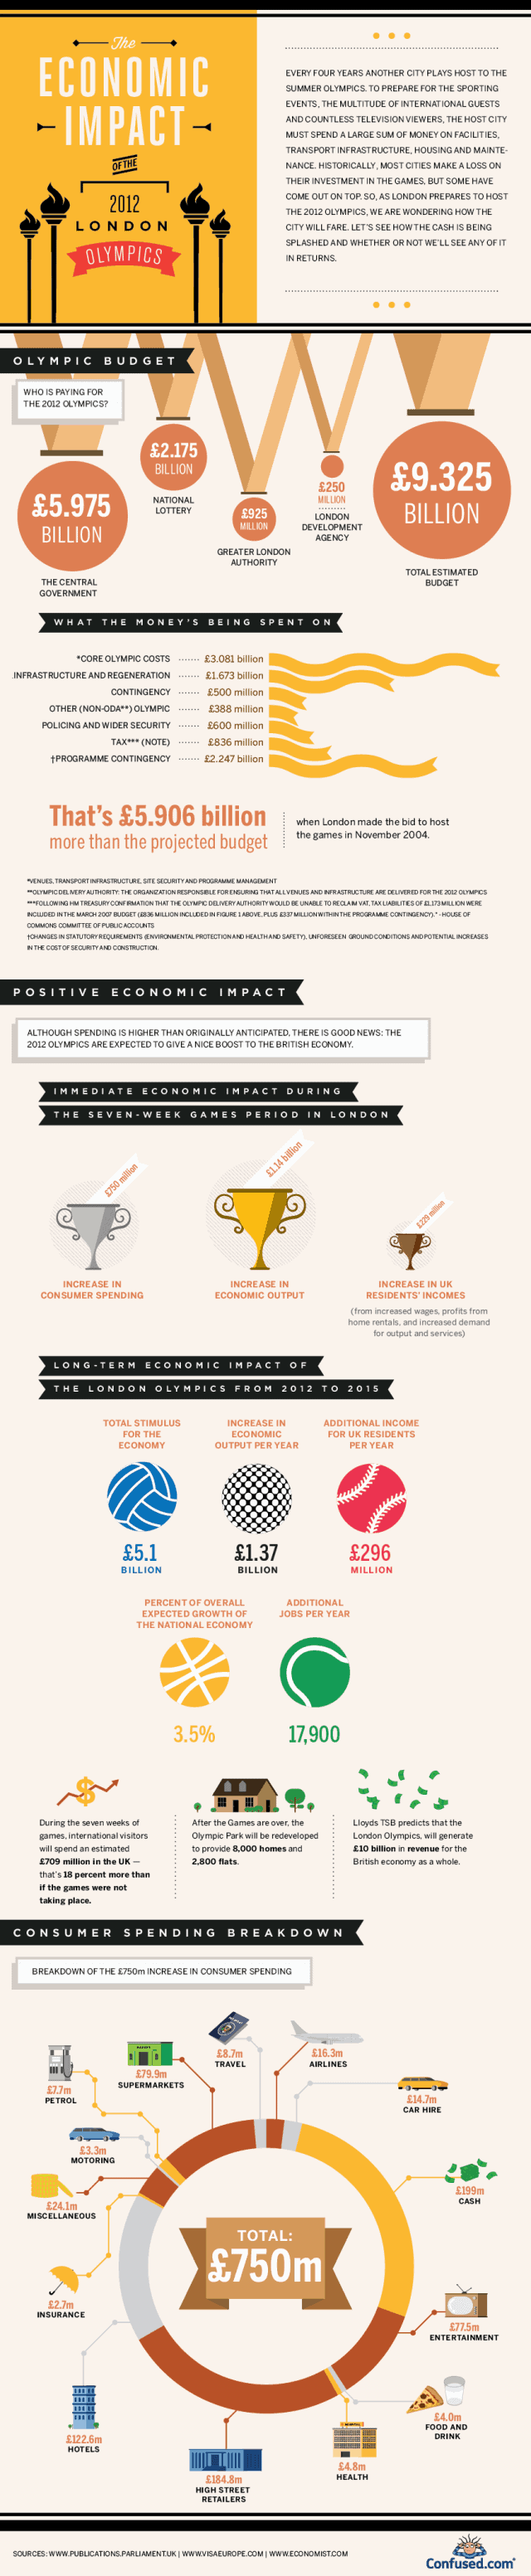 Economic Impact of the 2012 London Olympics [infographic]